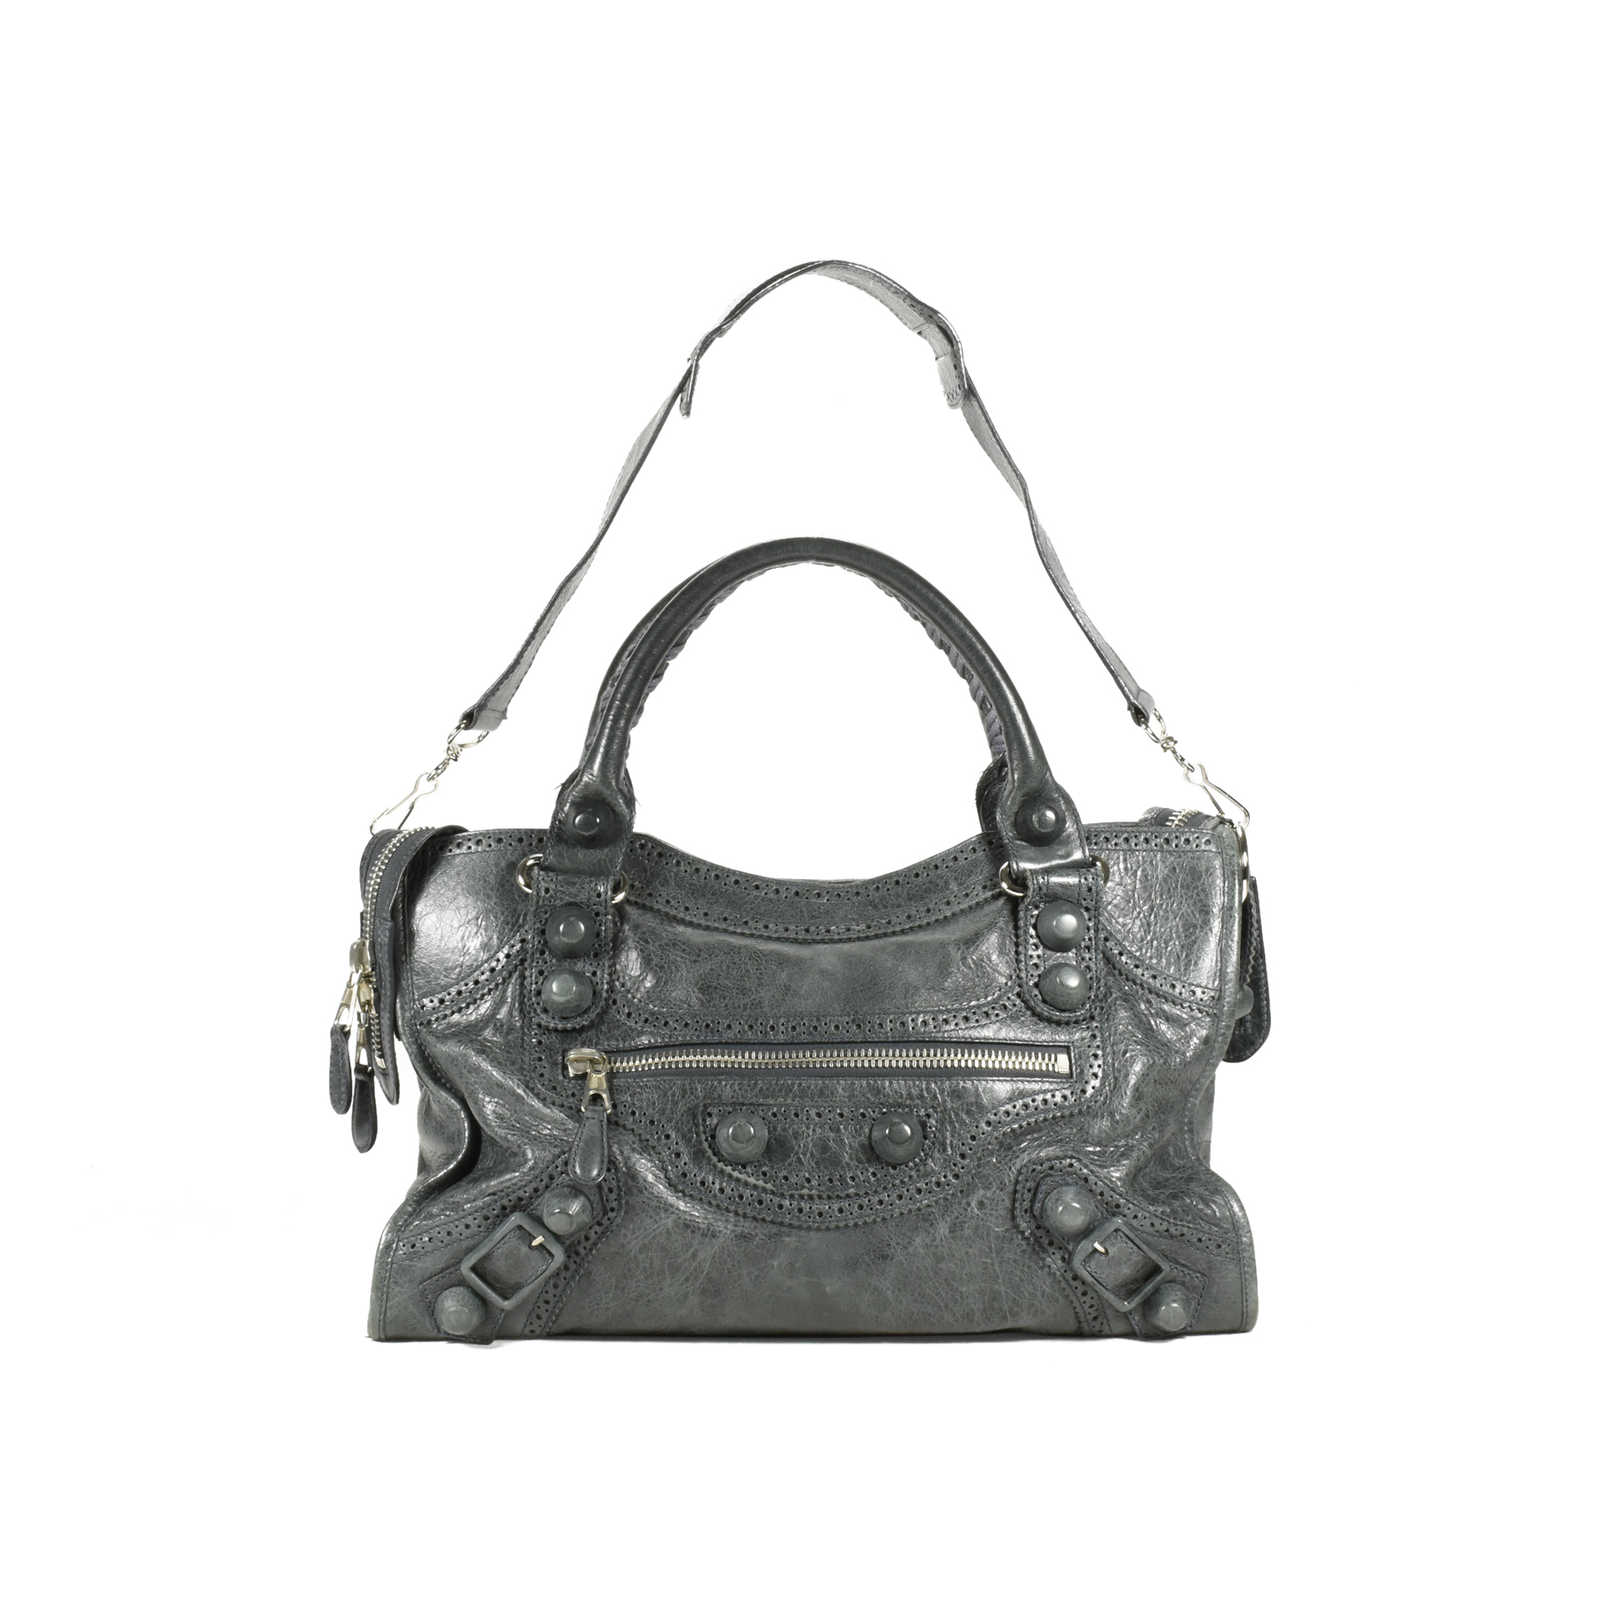 38d14ae27cb2 Authentic Second Hand Balenciaga Motorcycle Covered Giant City Bag  (PSS-200-00894) ...